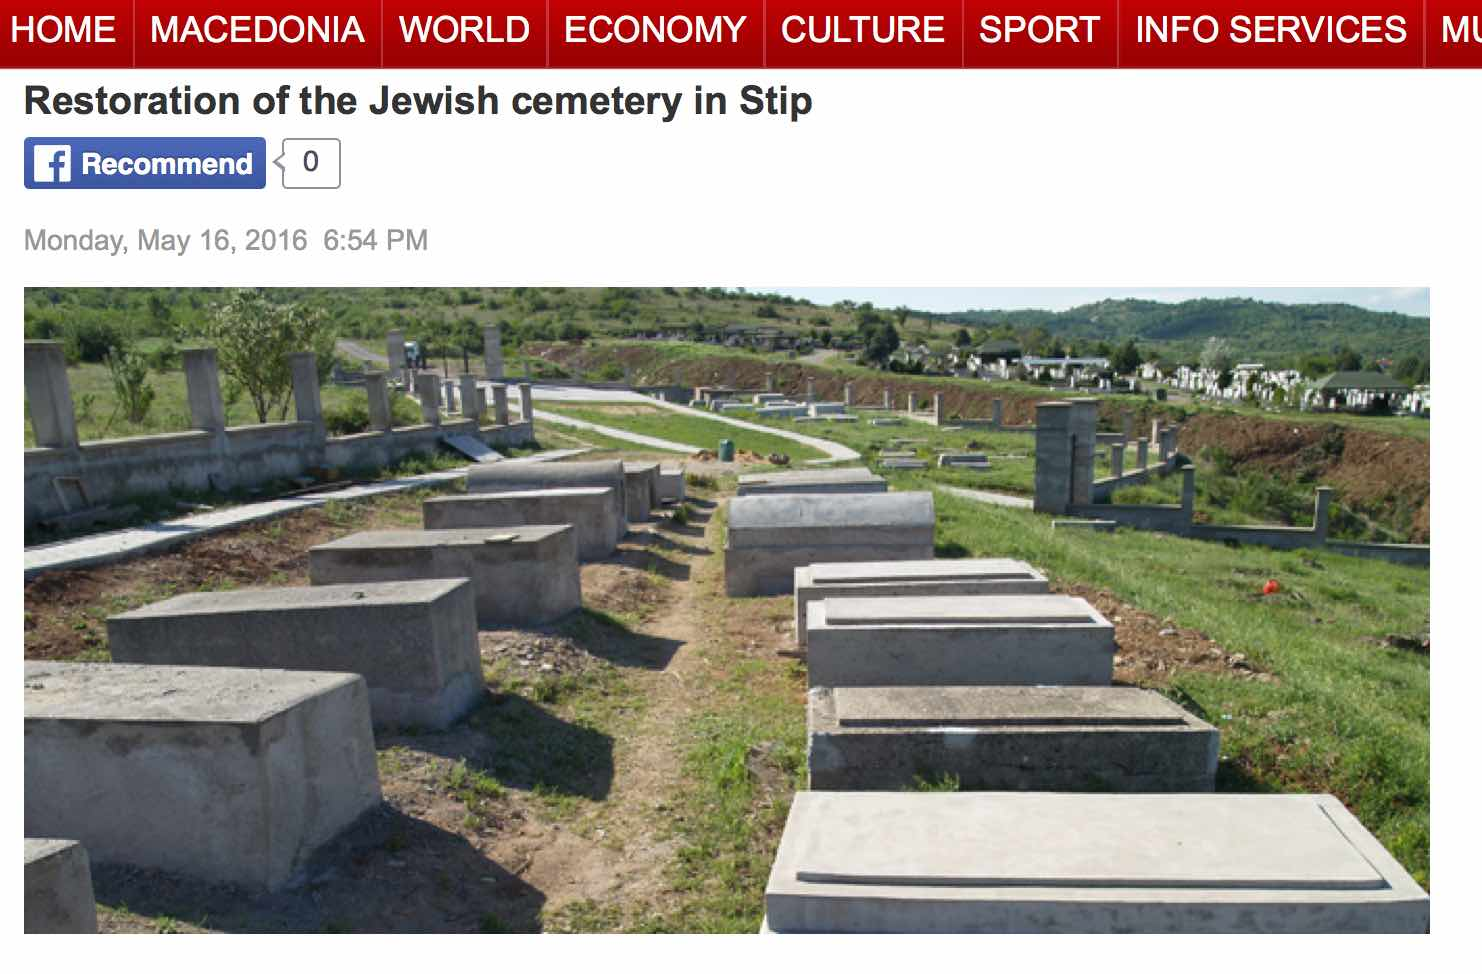 Screen shot from the mia.mk web site showing restored Jewish cemetery in Stip